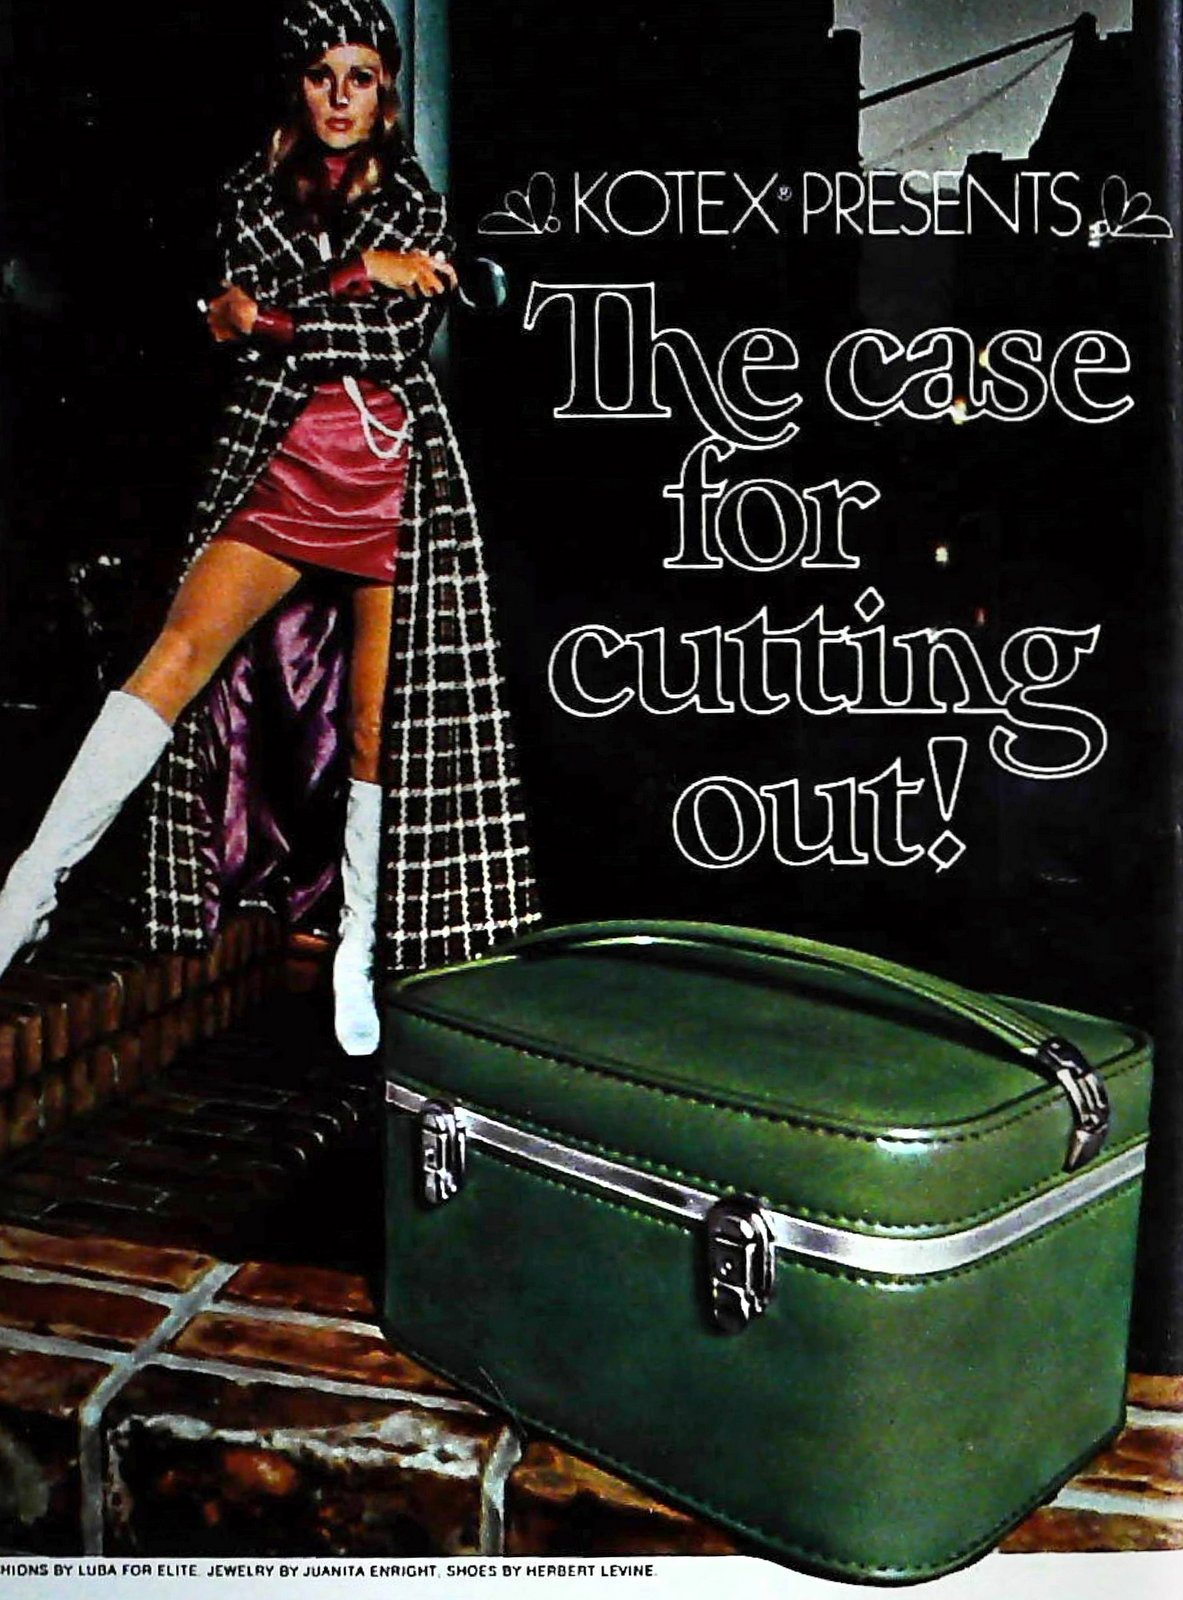 Green beauty case luggage (1970)